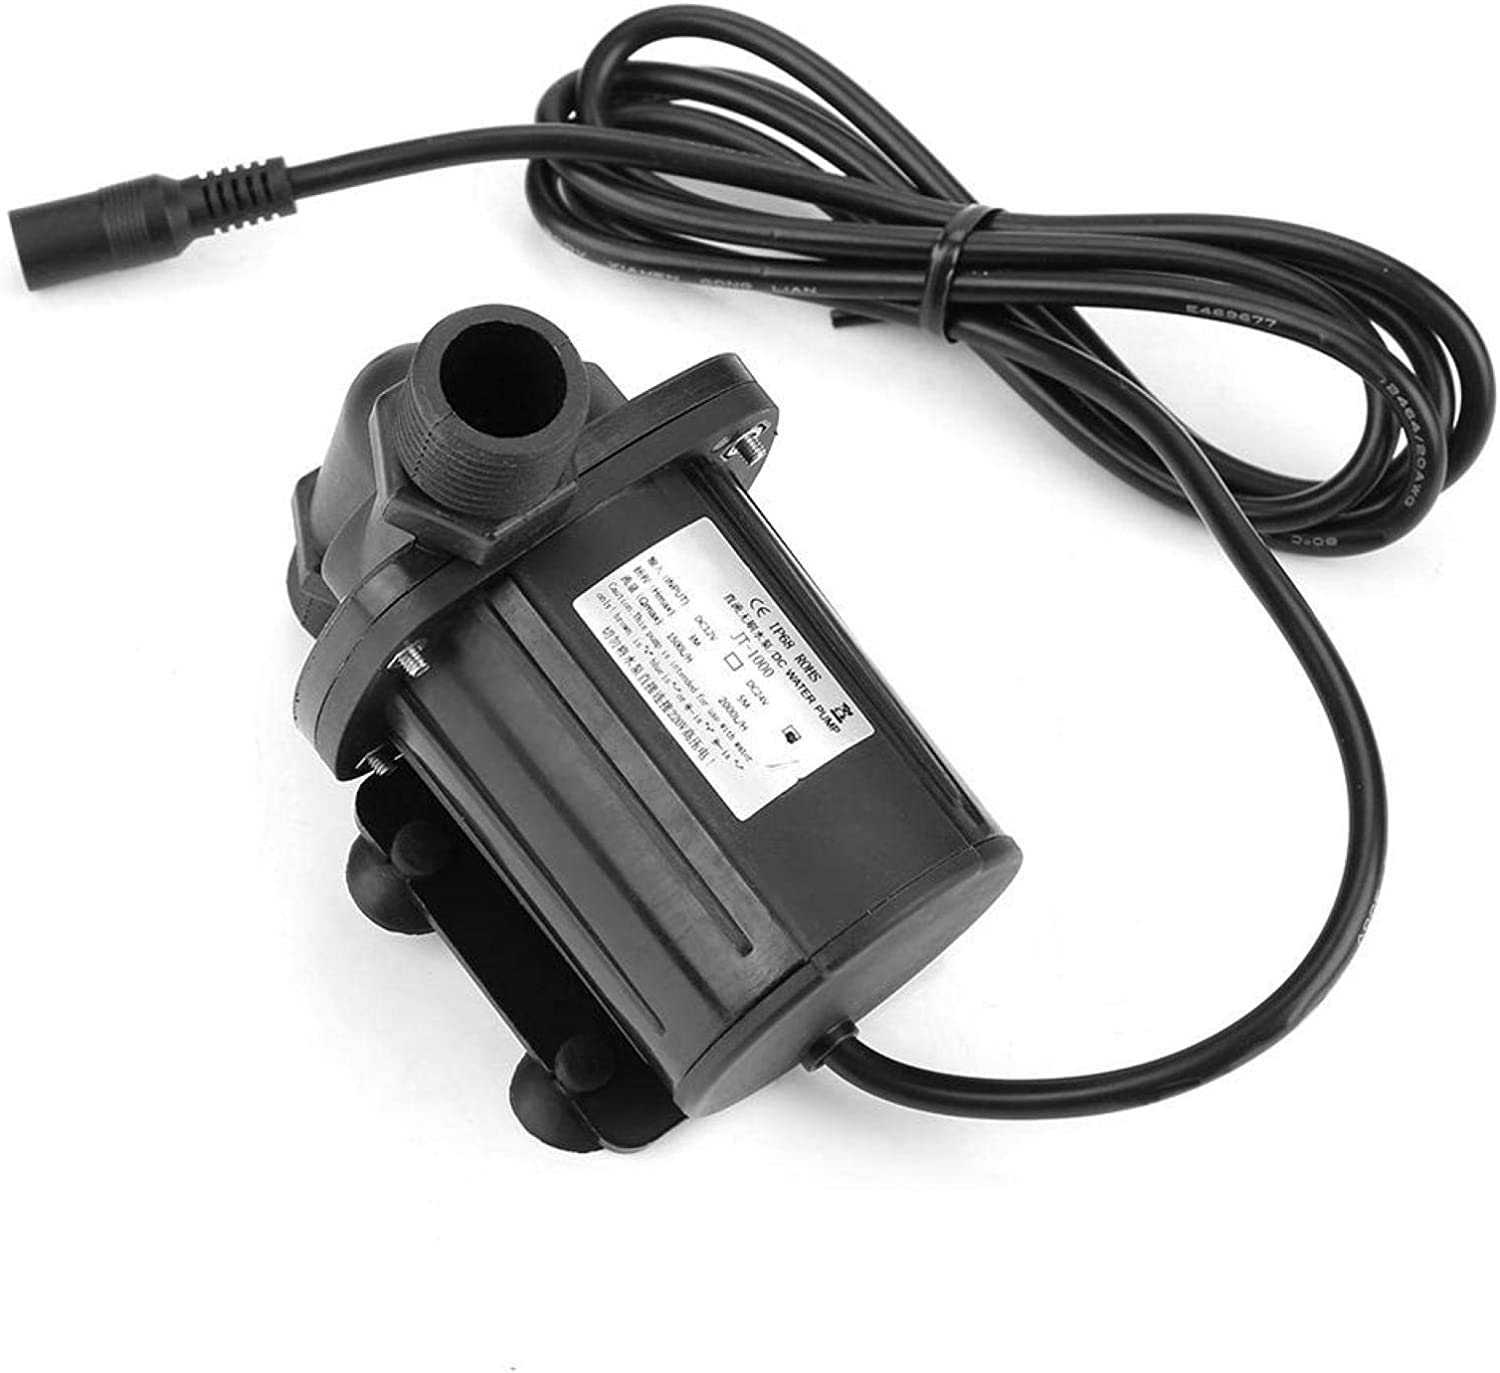 Low Noise Water Pump DC Pum Brushless 12V Boost Now free shipping New item Submersible